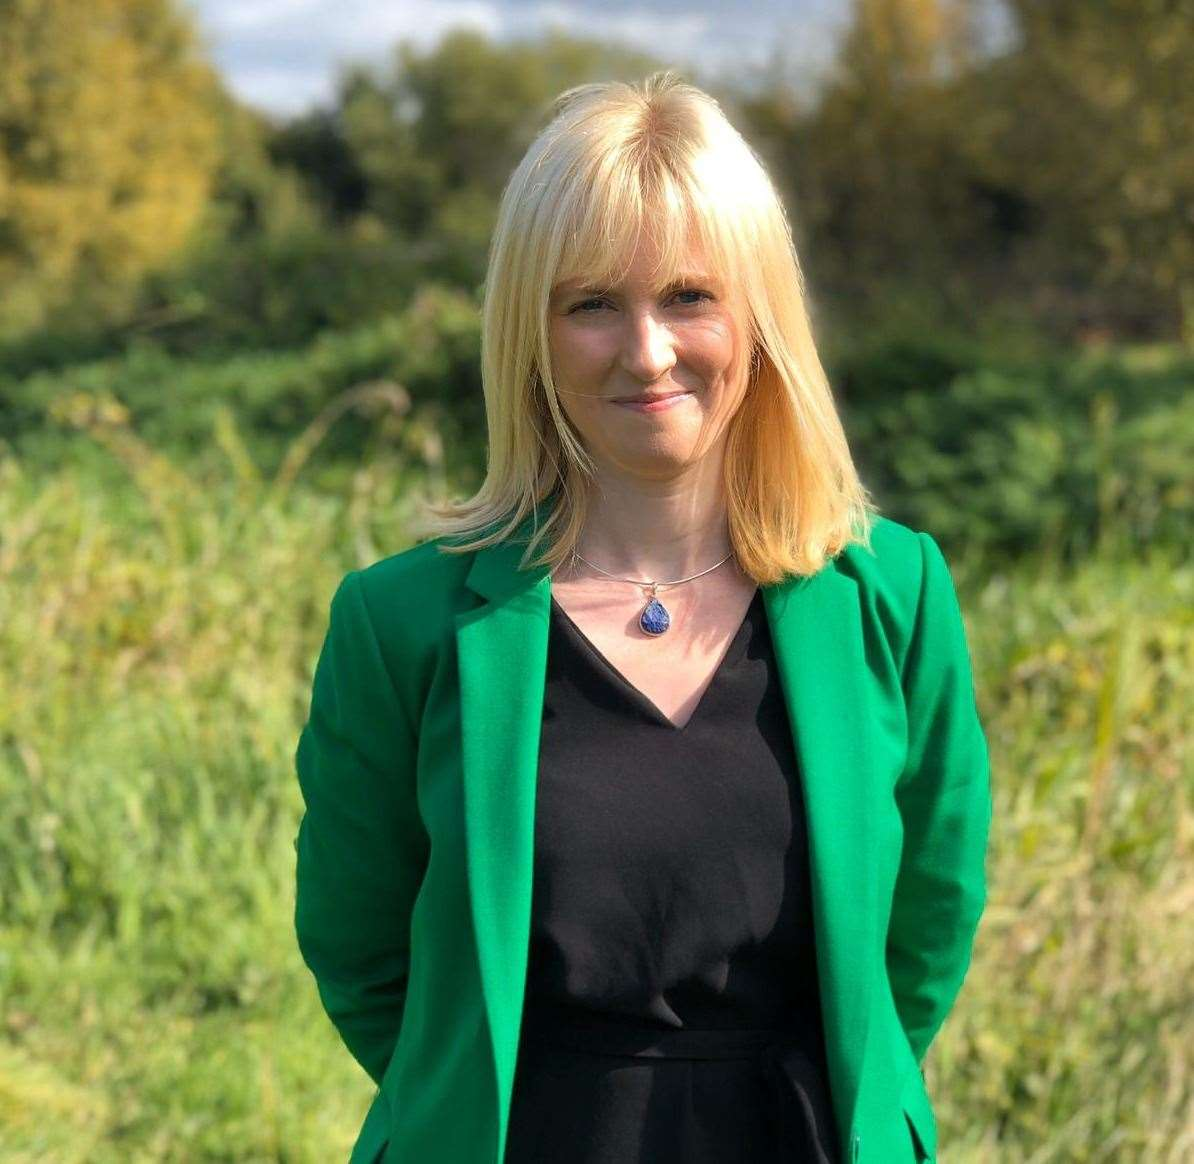 Rosie Duffield, MP